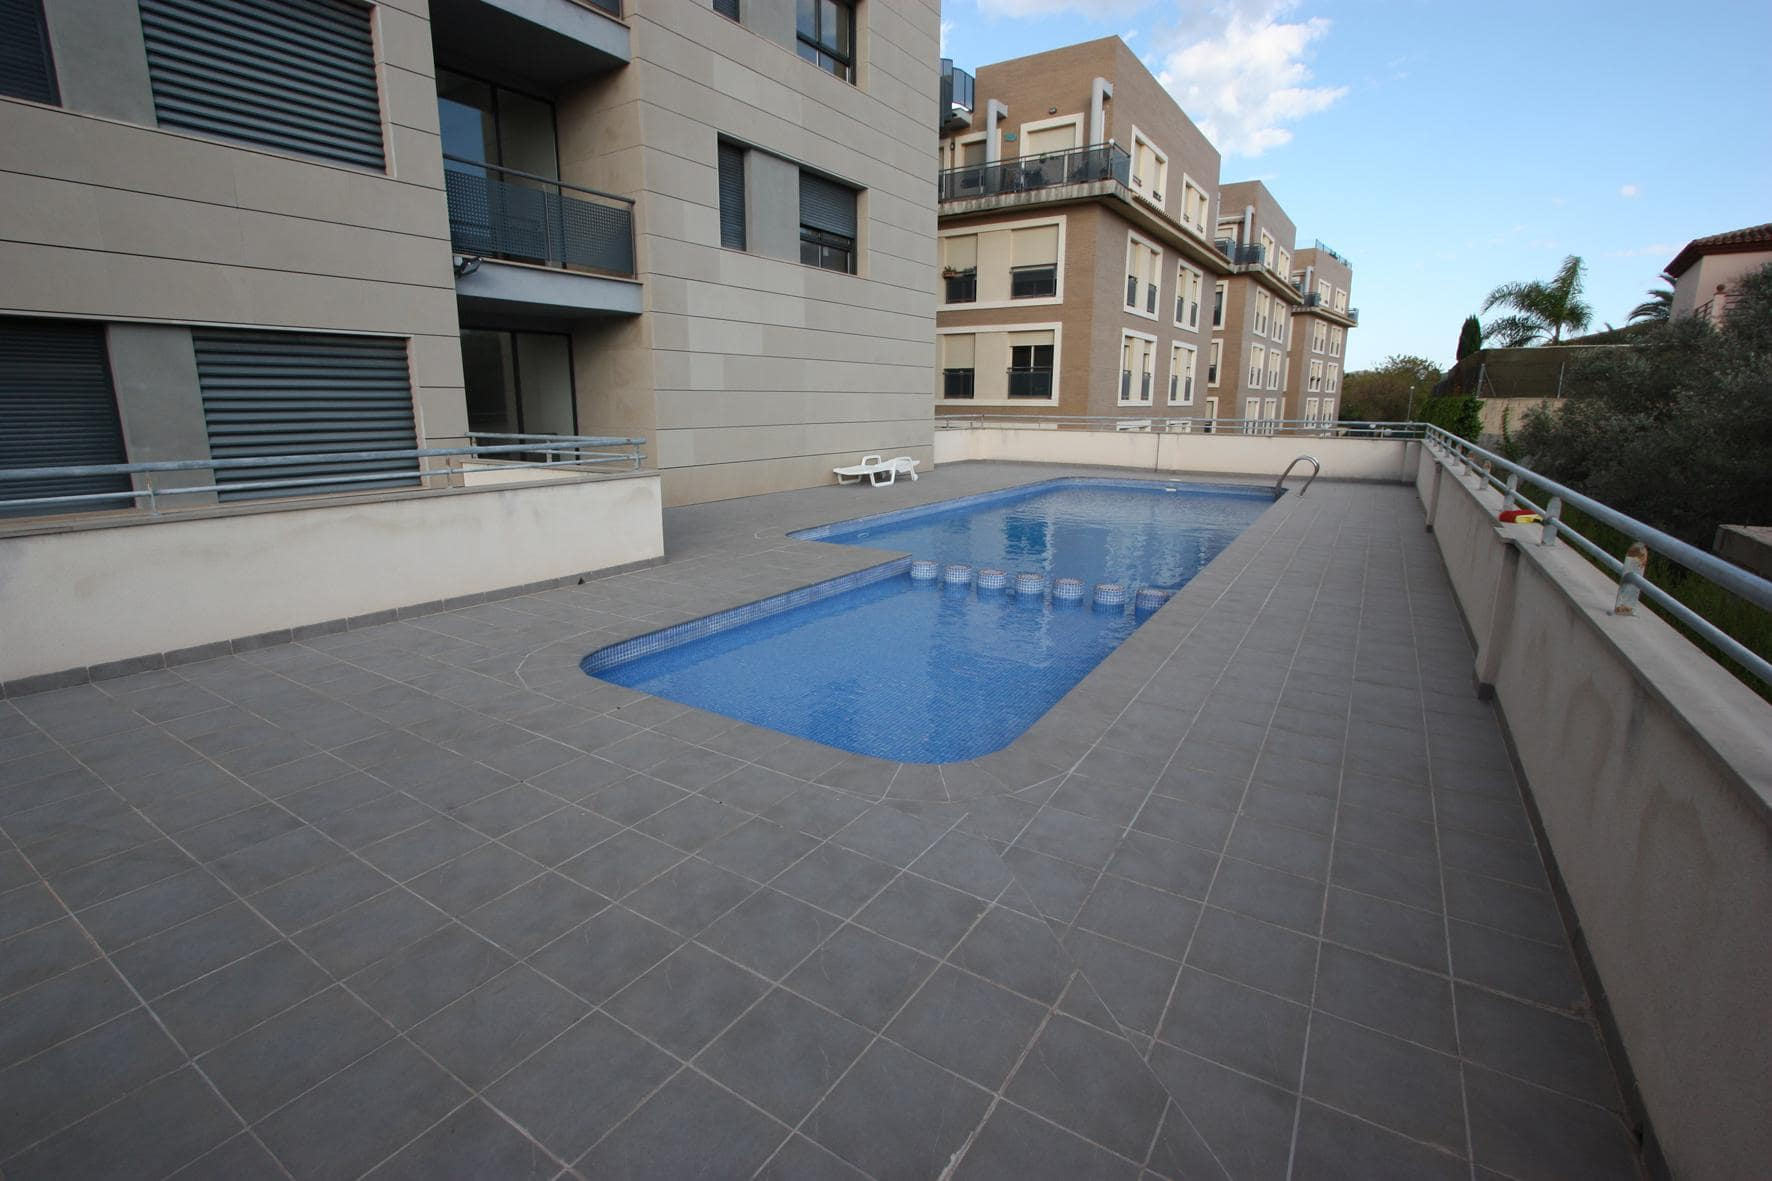 2 Bedroom Apartment in Pedreguer